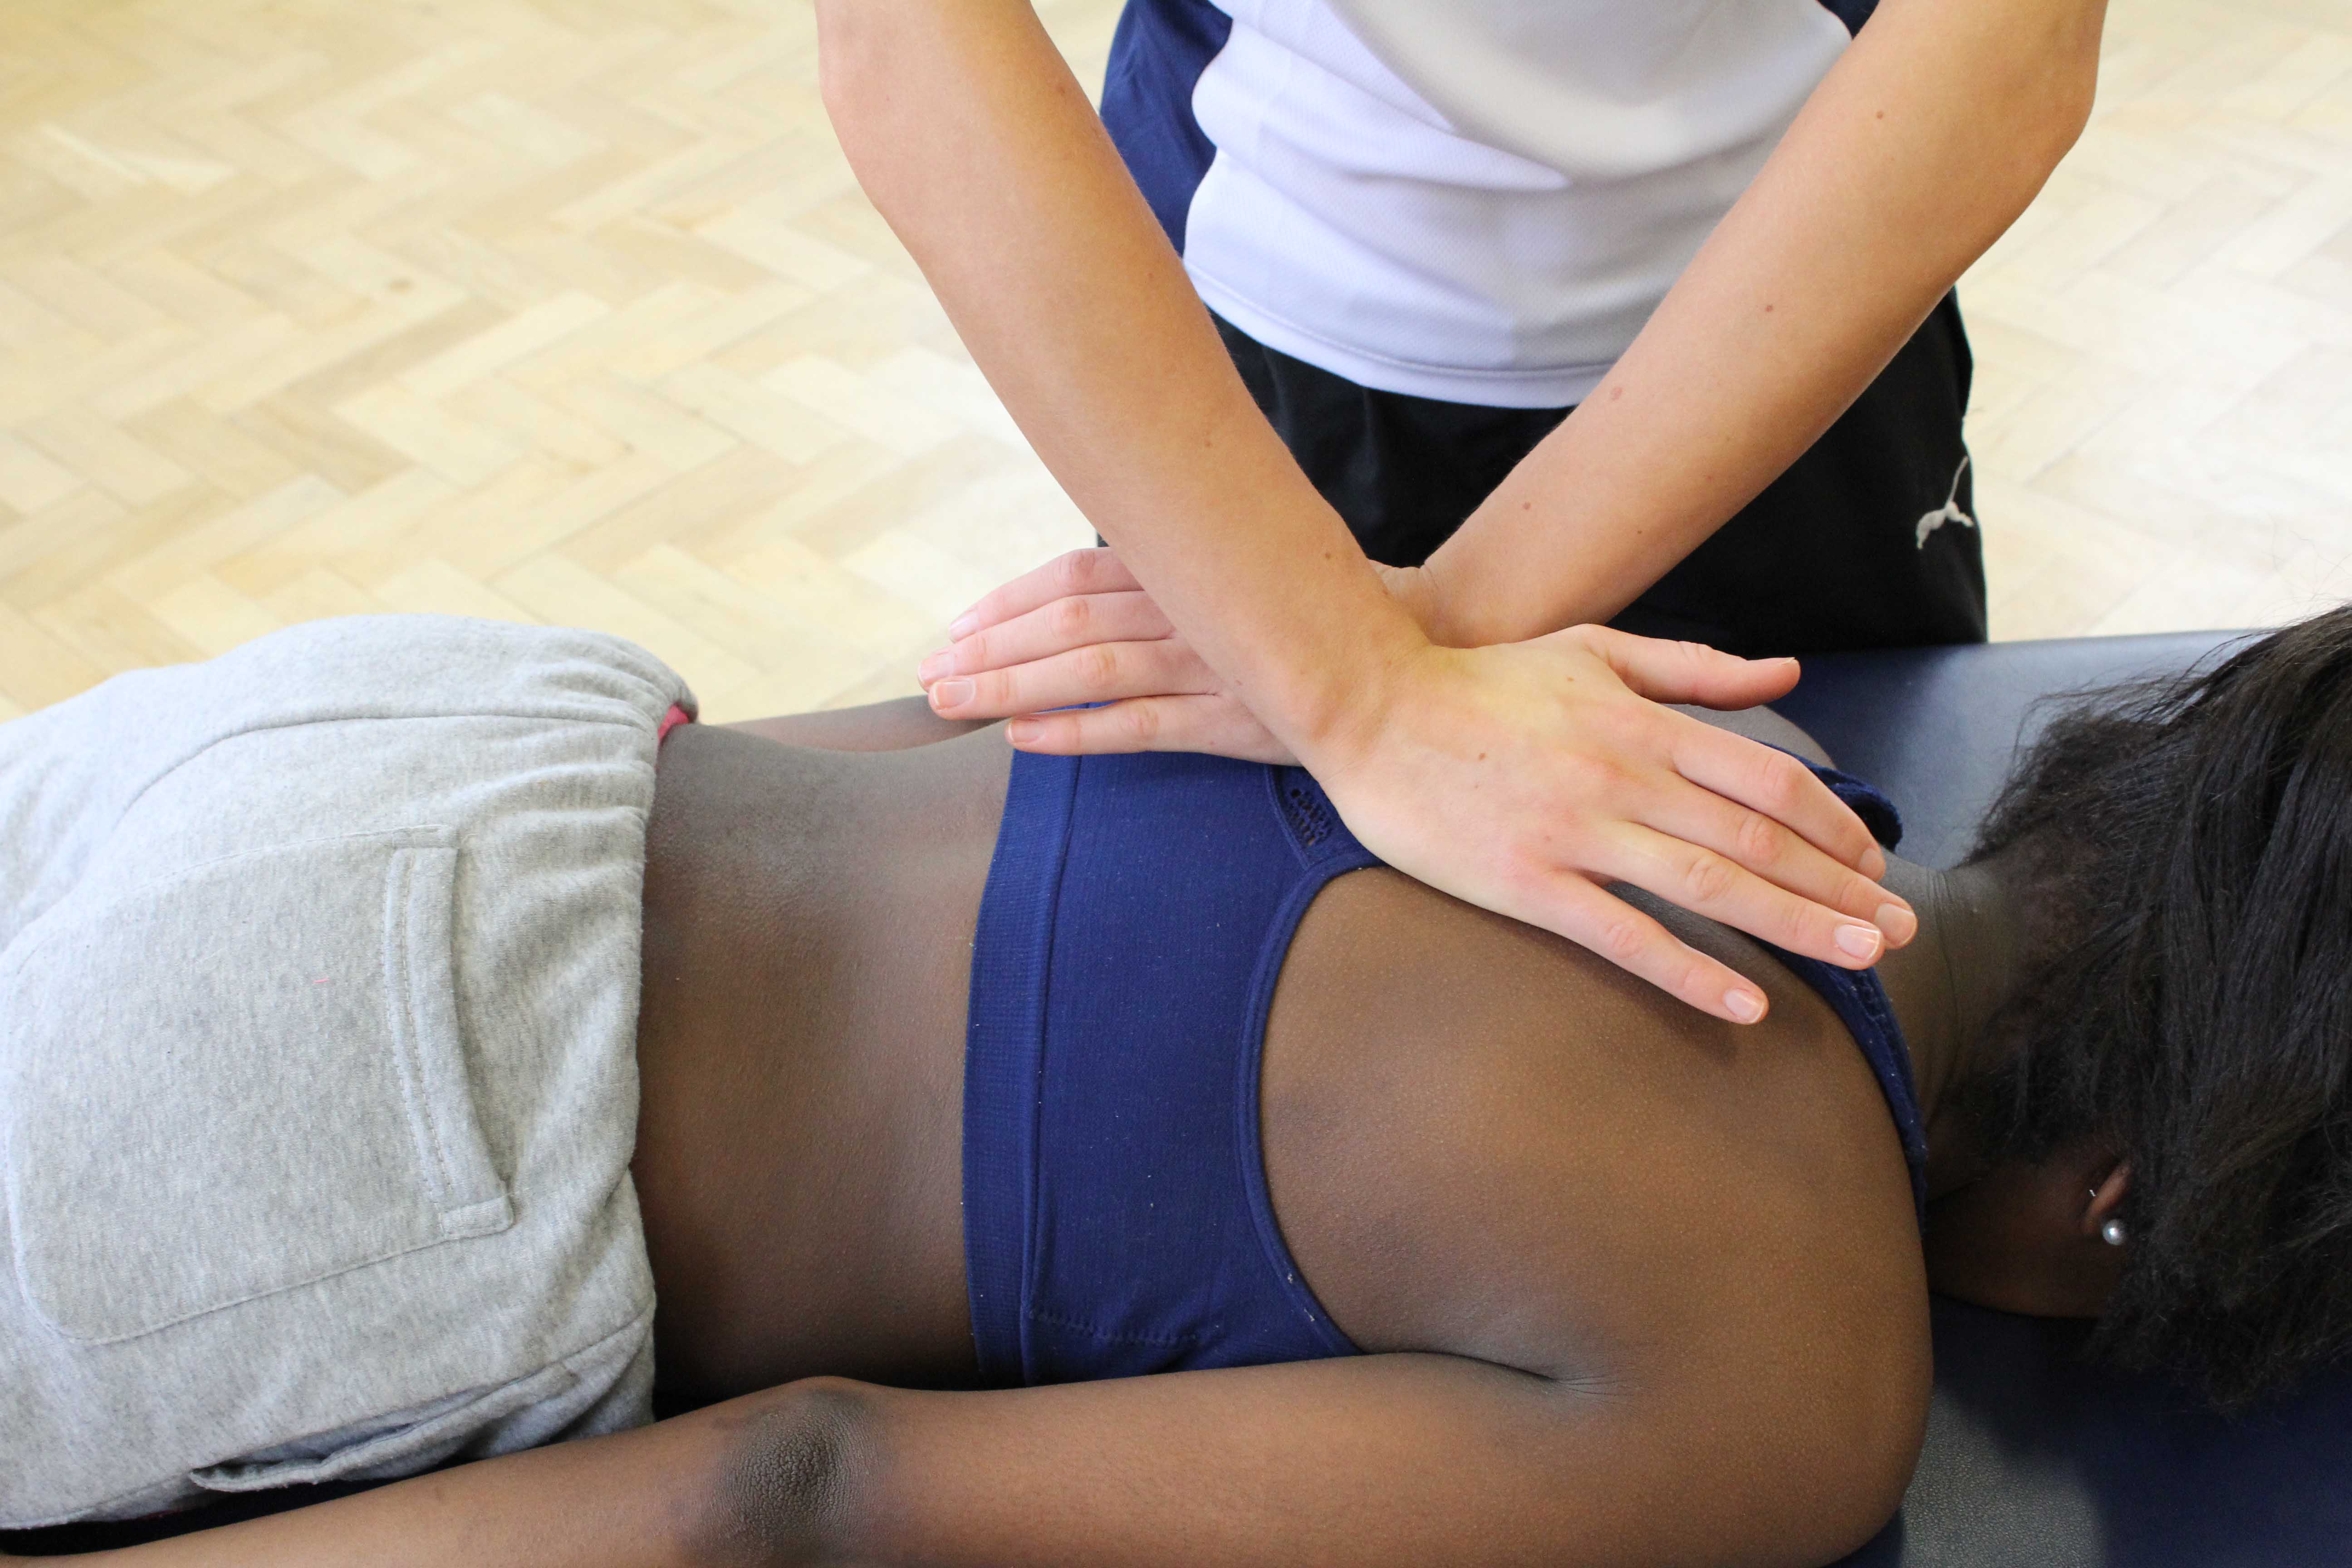 Nags and Snags in a form of manula therapy performed by physiotherapists in order to increase the range of movement around a joint.